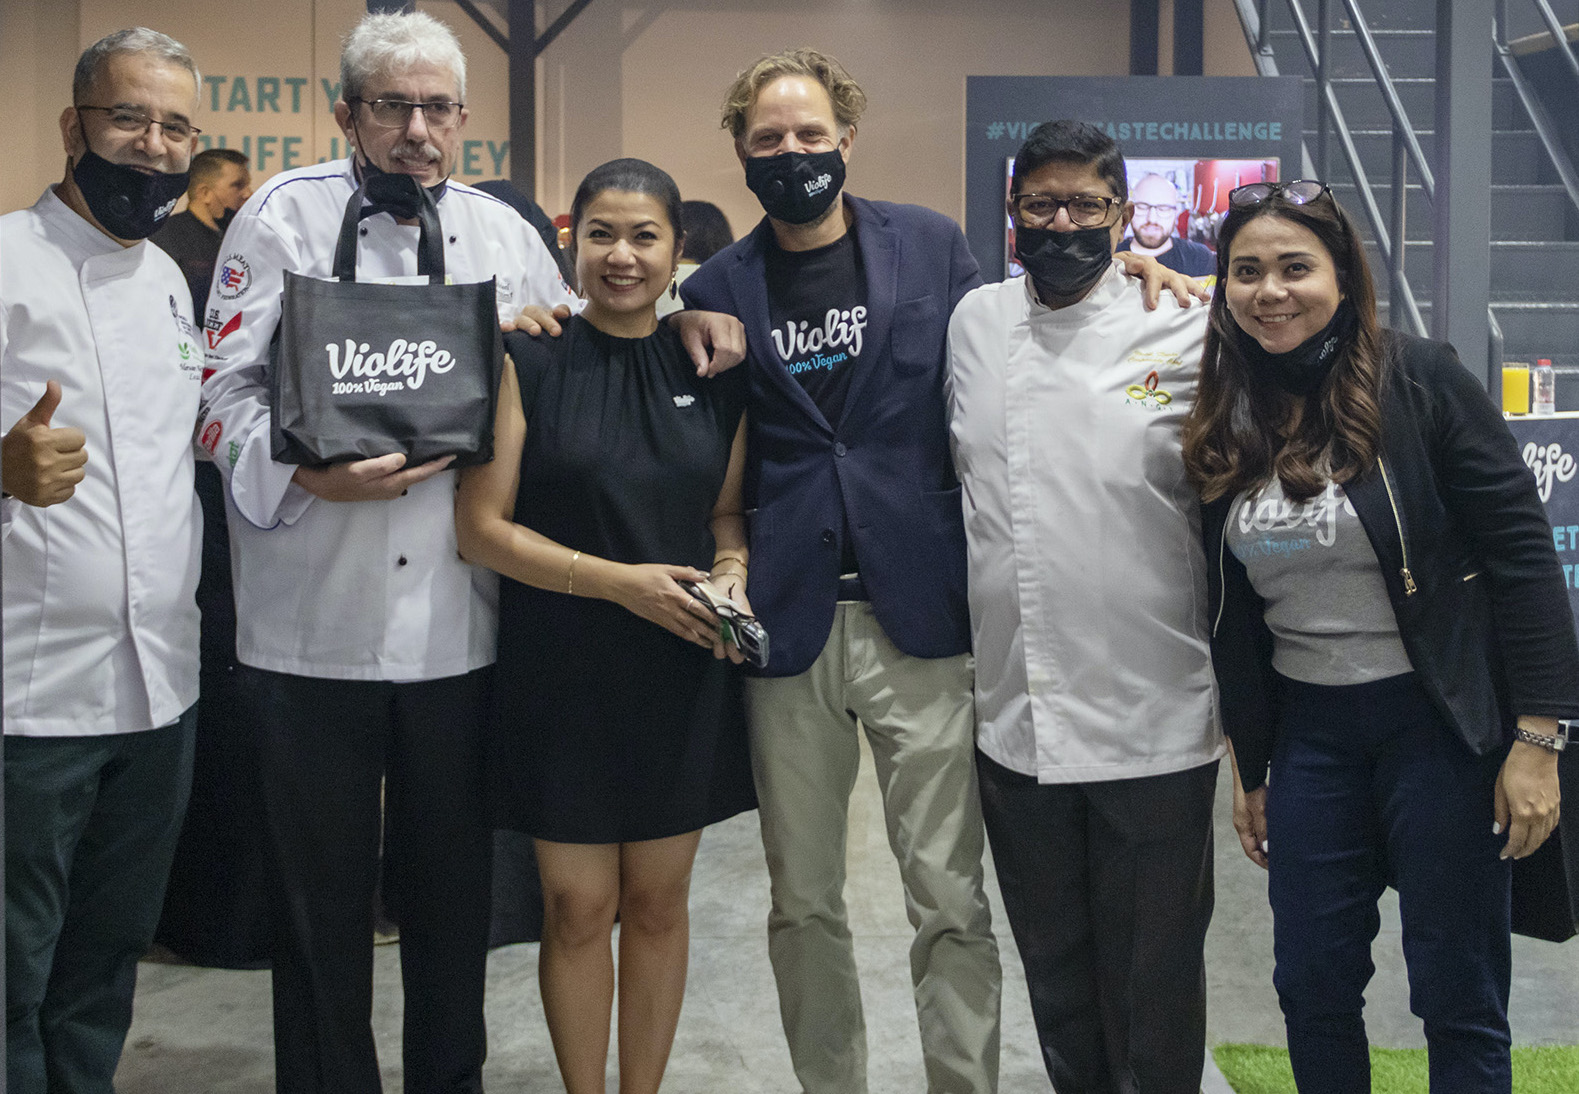 Violife debuts in the UAE as plant-based options grow in popularity